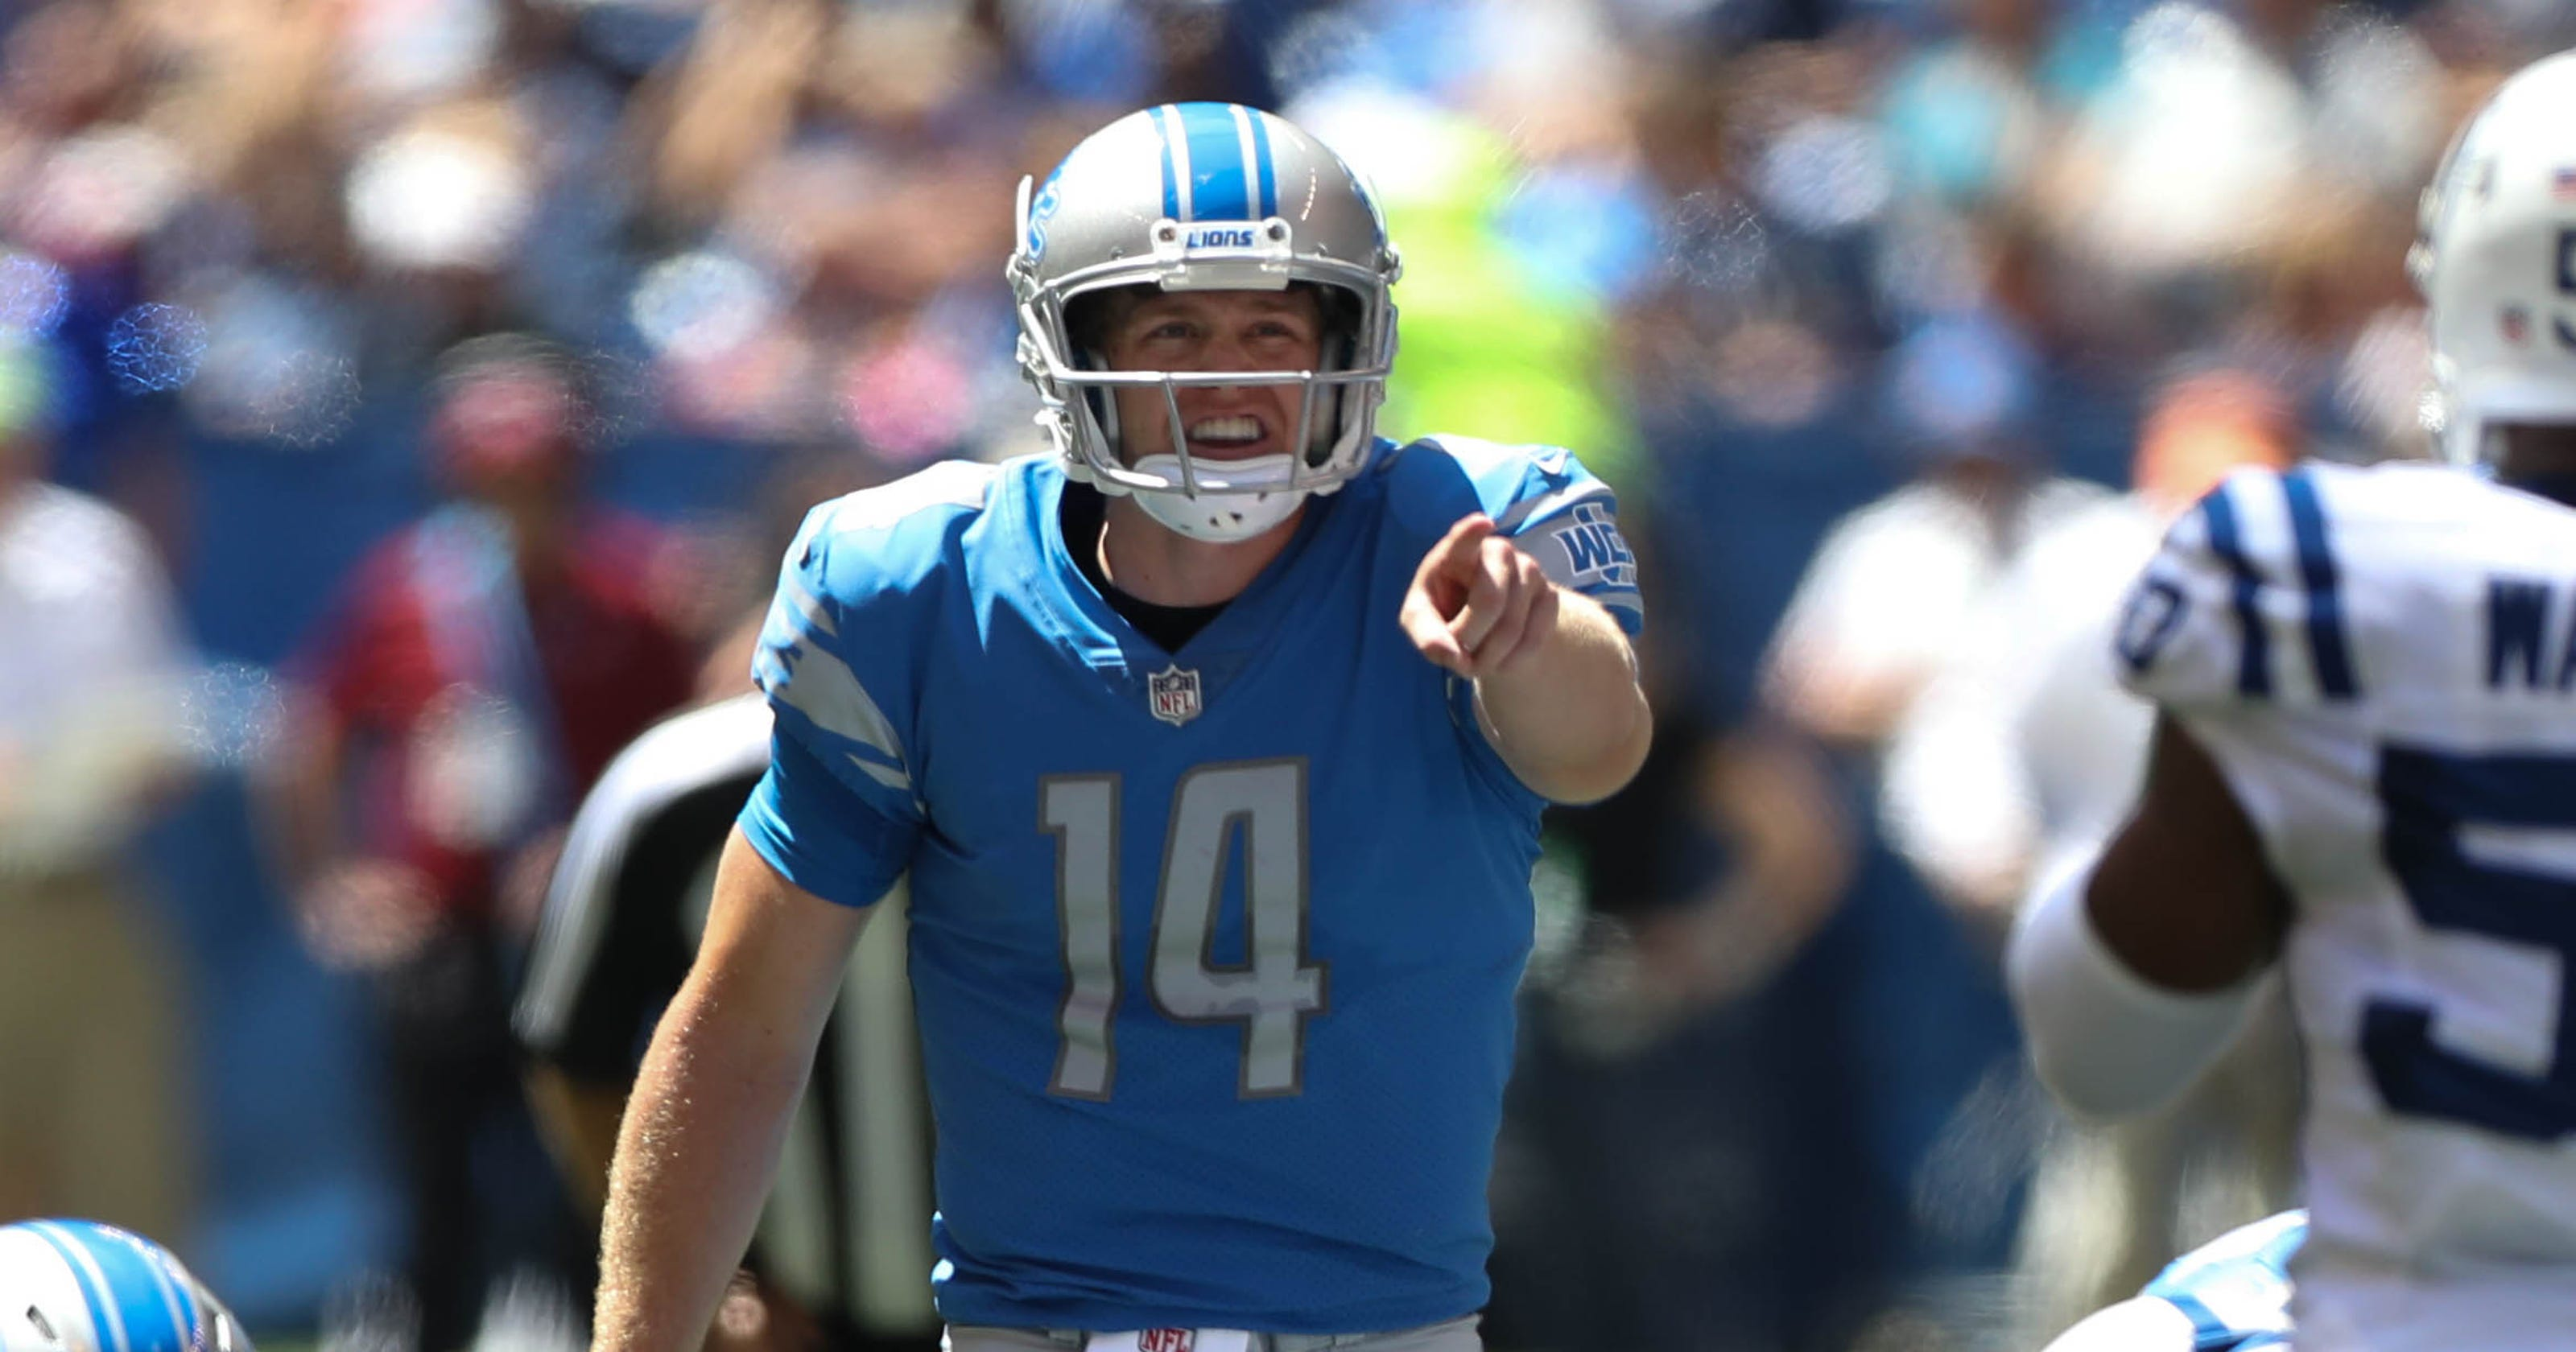 newest 41dd3 9f8f6 Detroit Lions QB Jake Rudock seems like a natural to play in NFL